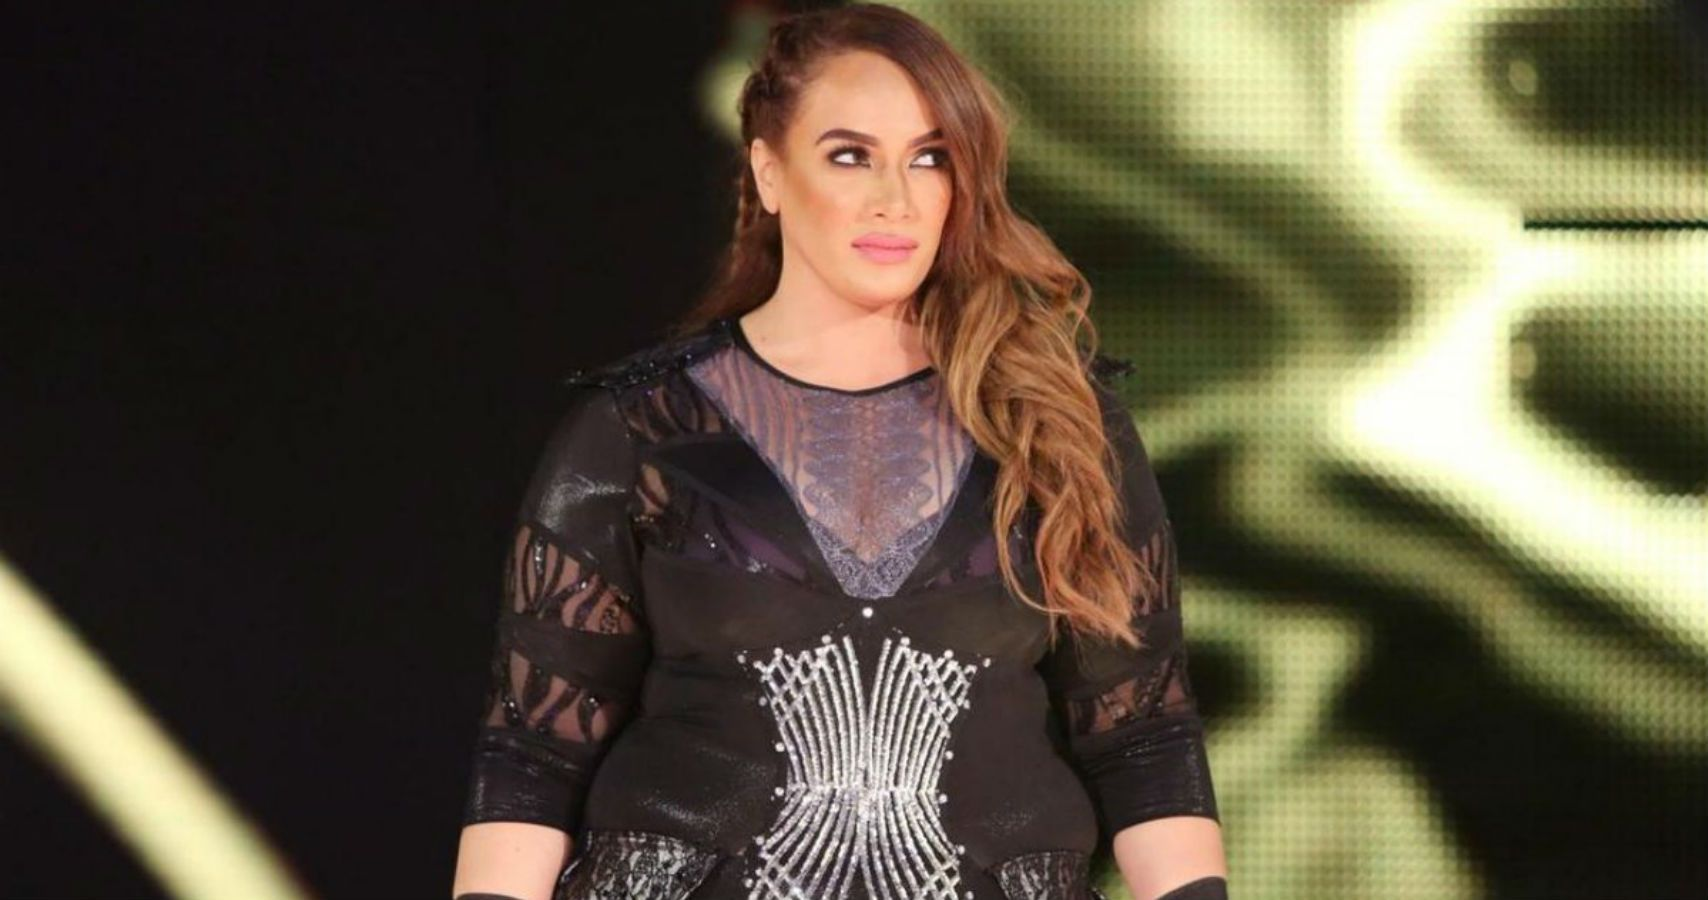 SEE: Nia Jax shouts My hole! - wrestler has hilarious